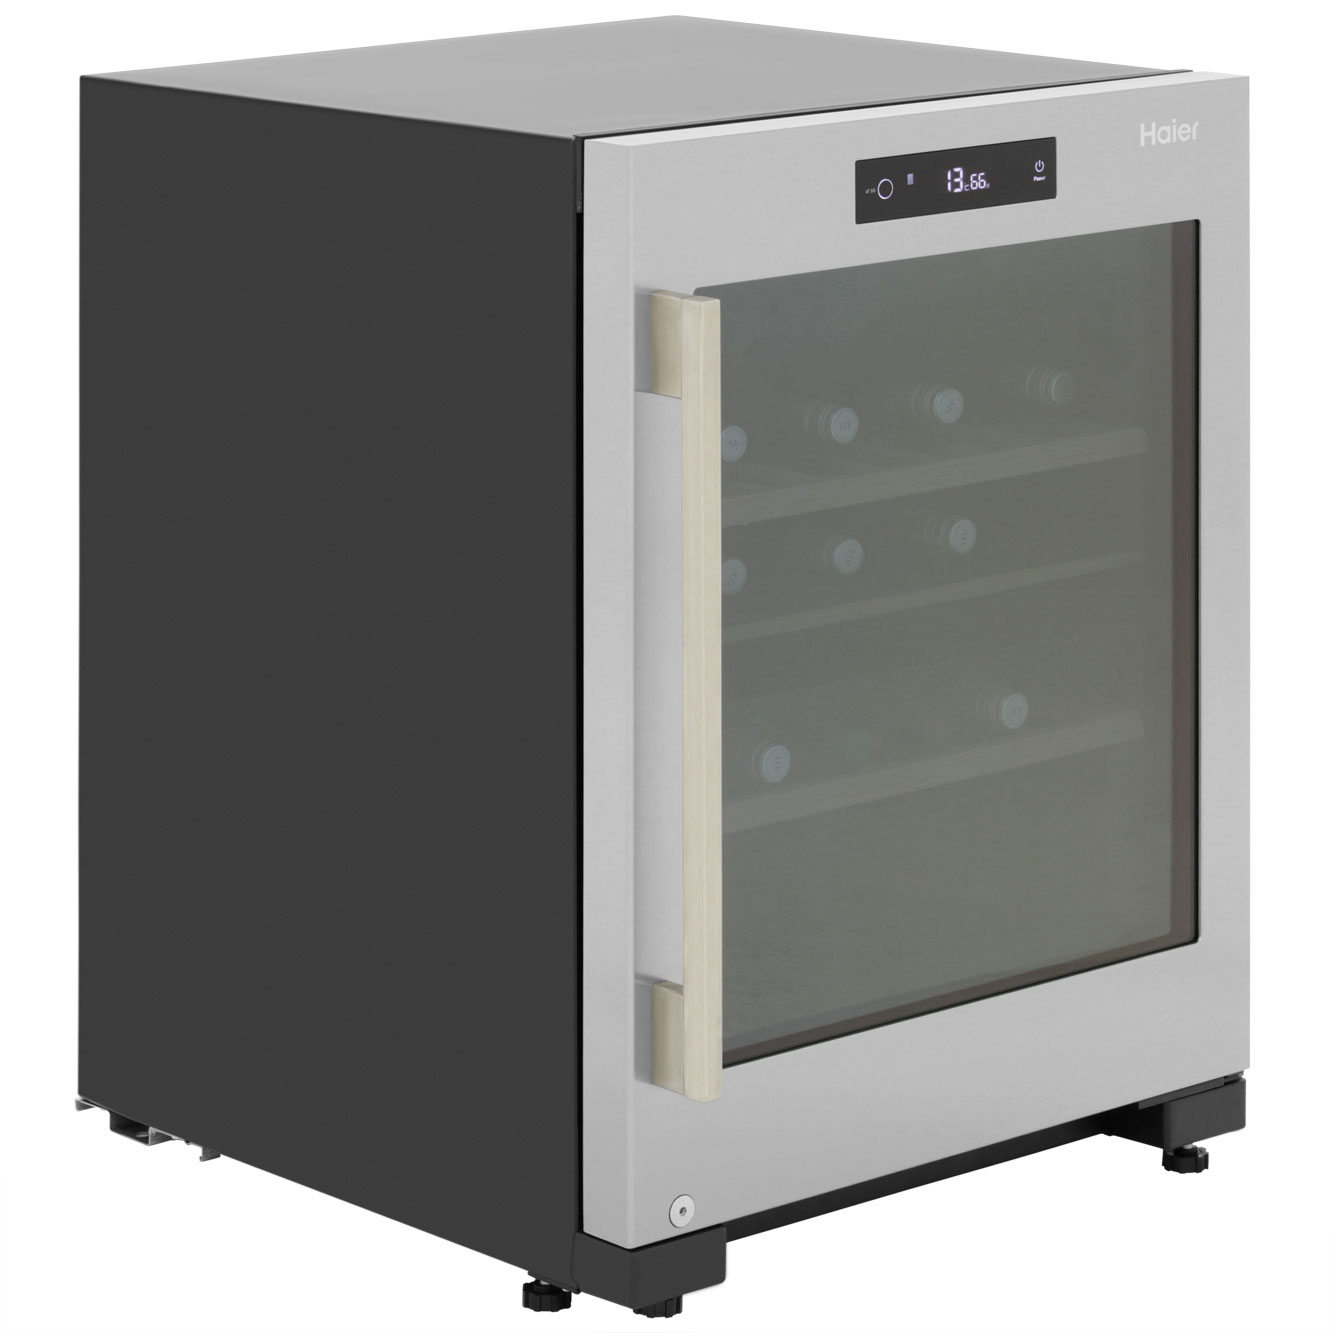 Haier WS50GDBI Free Standing Wine Cooler in Stainless Steel